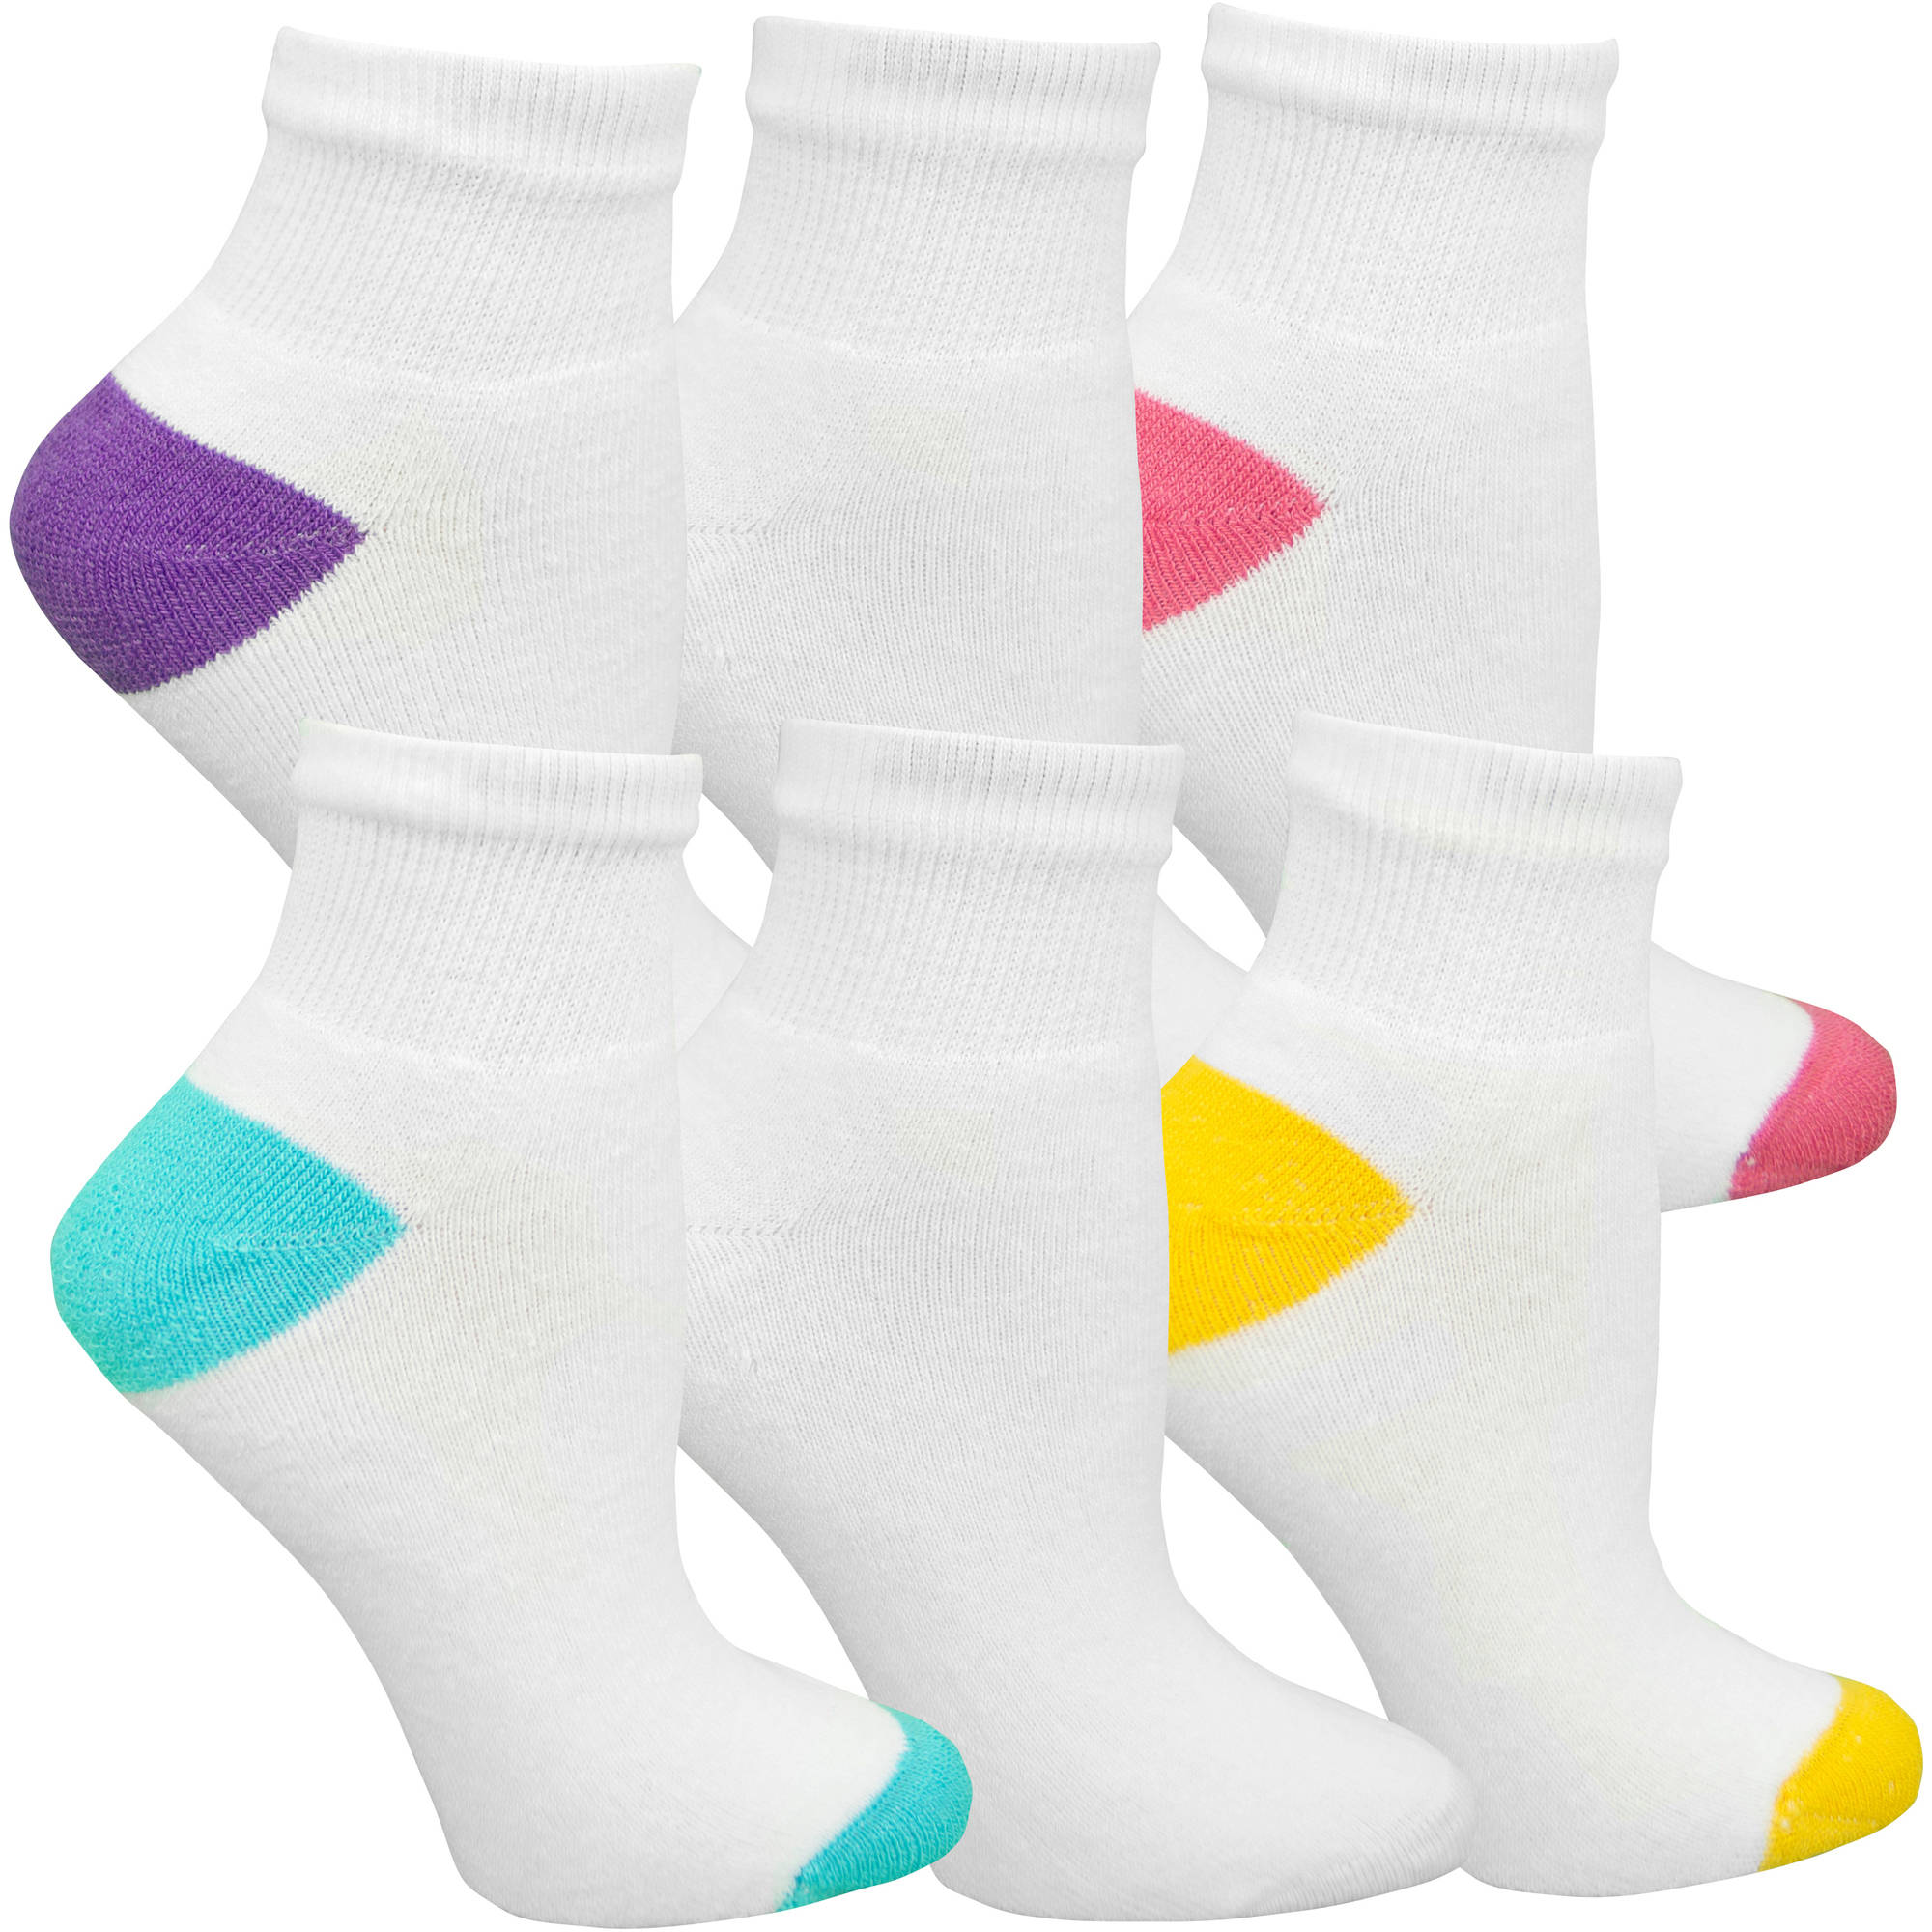 Fruit of the Loom Womens SoftSpun Ankle Socks - 6 Pairs